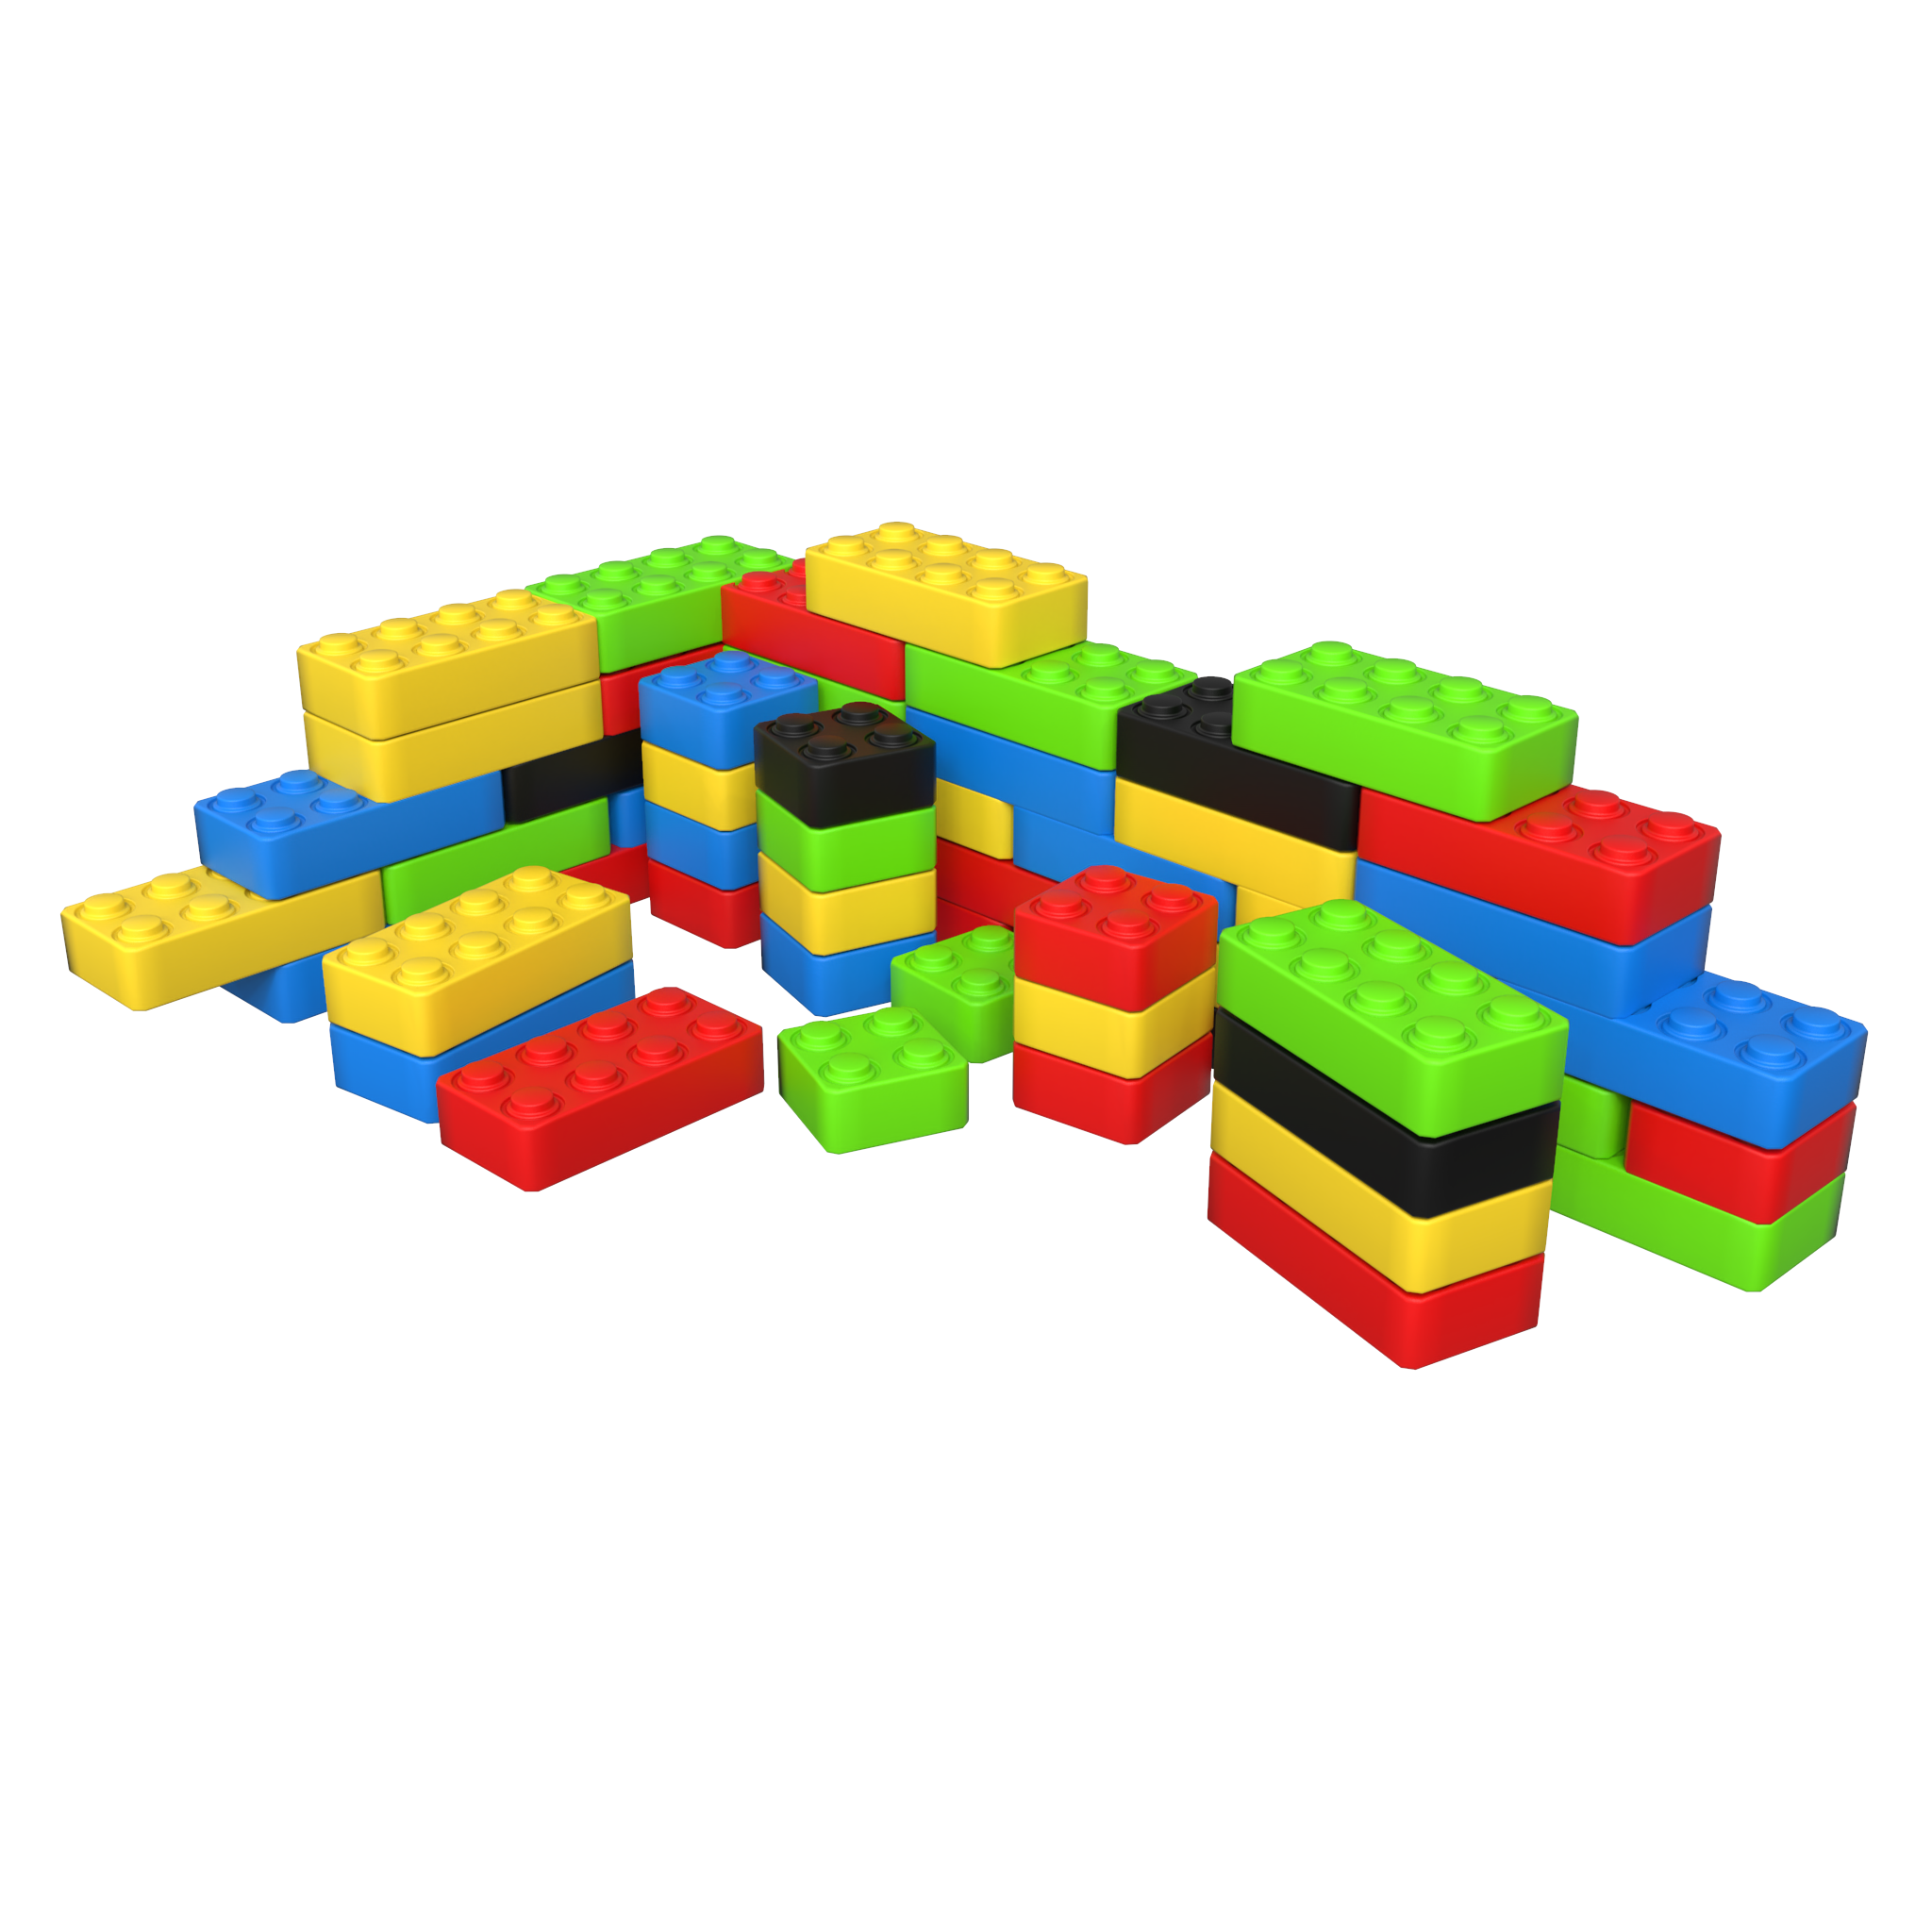 This image shows a Play system Funblocks